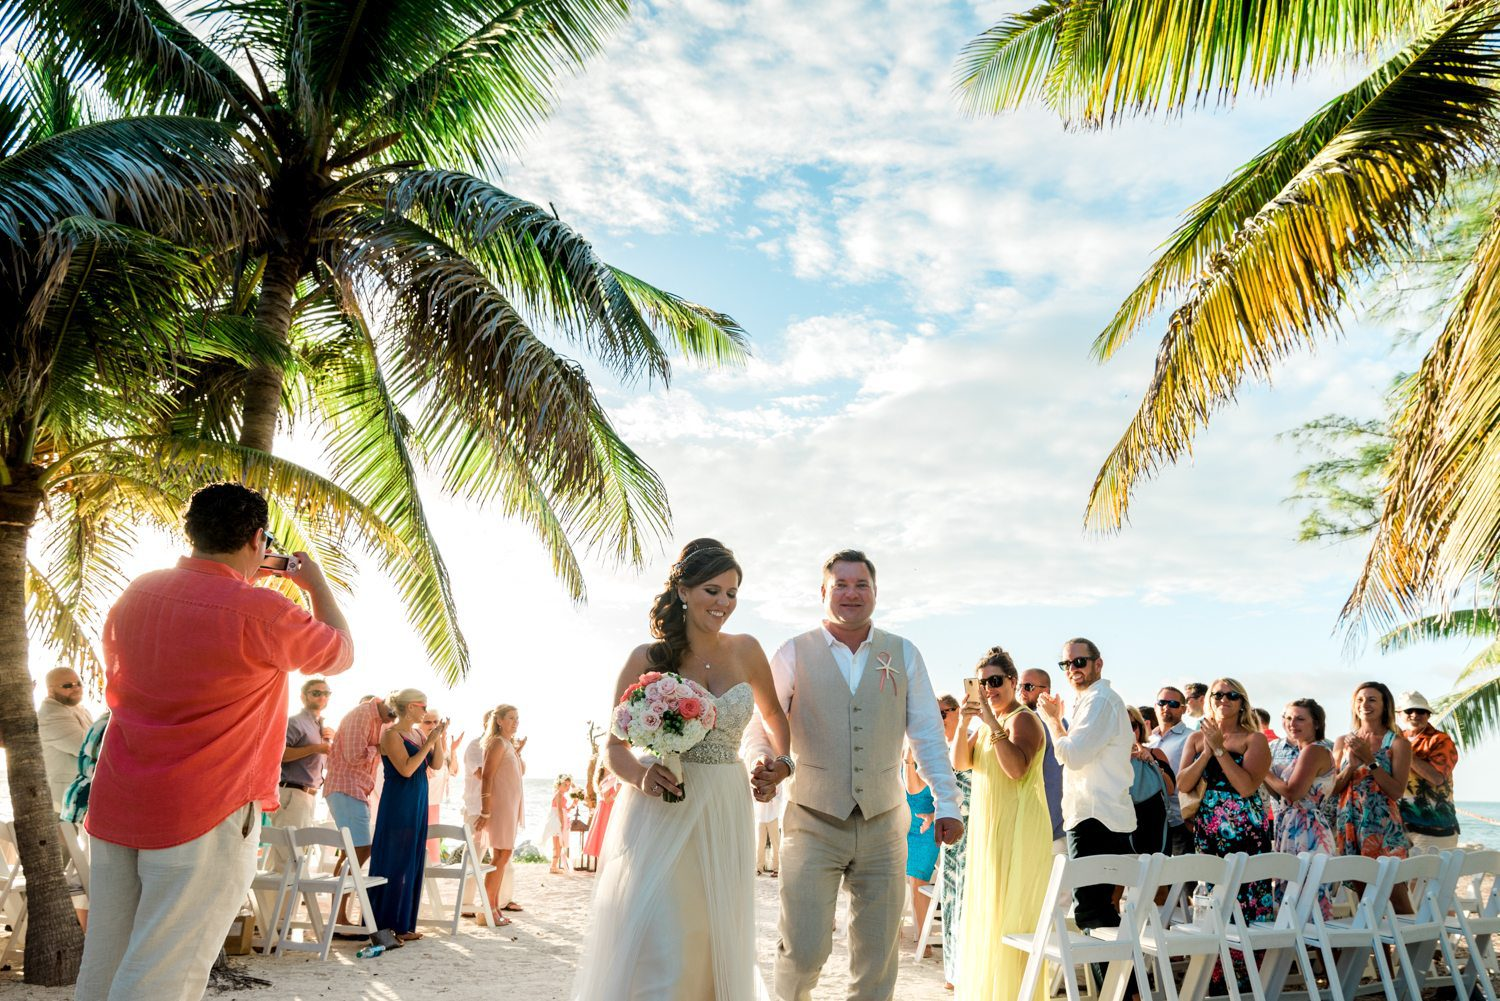 Erin Colin Fort Zachary Taylor Rooftop Cafe Key West Wedding Photographer 45 - Erin & Colin   Key West Wedding Photographer   Fort Zachary Taylor